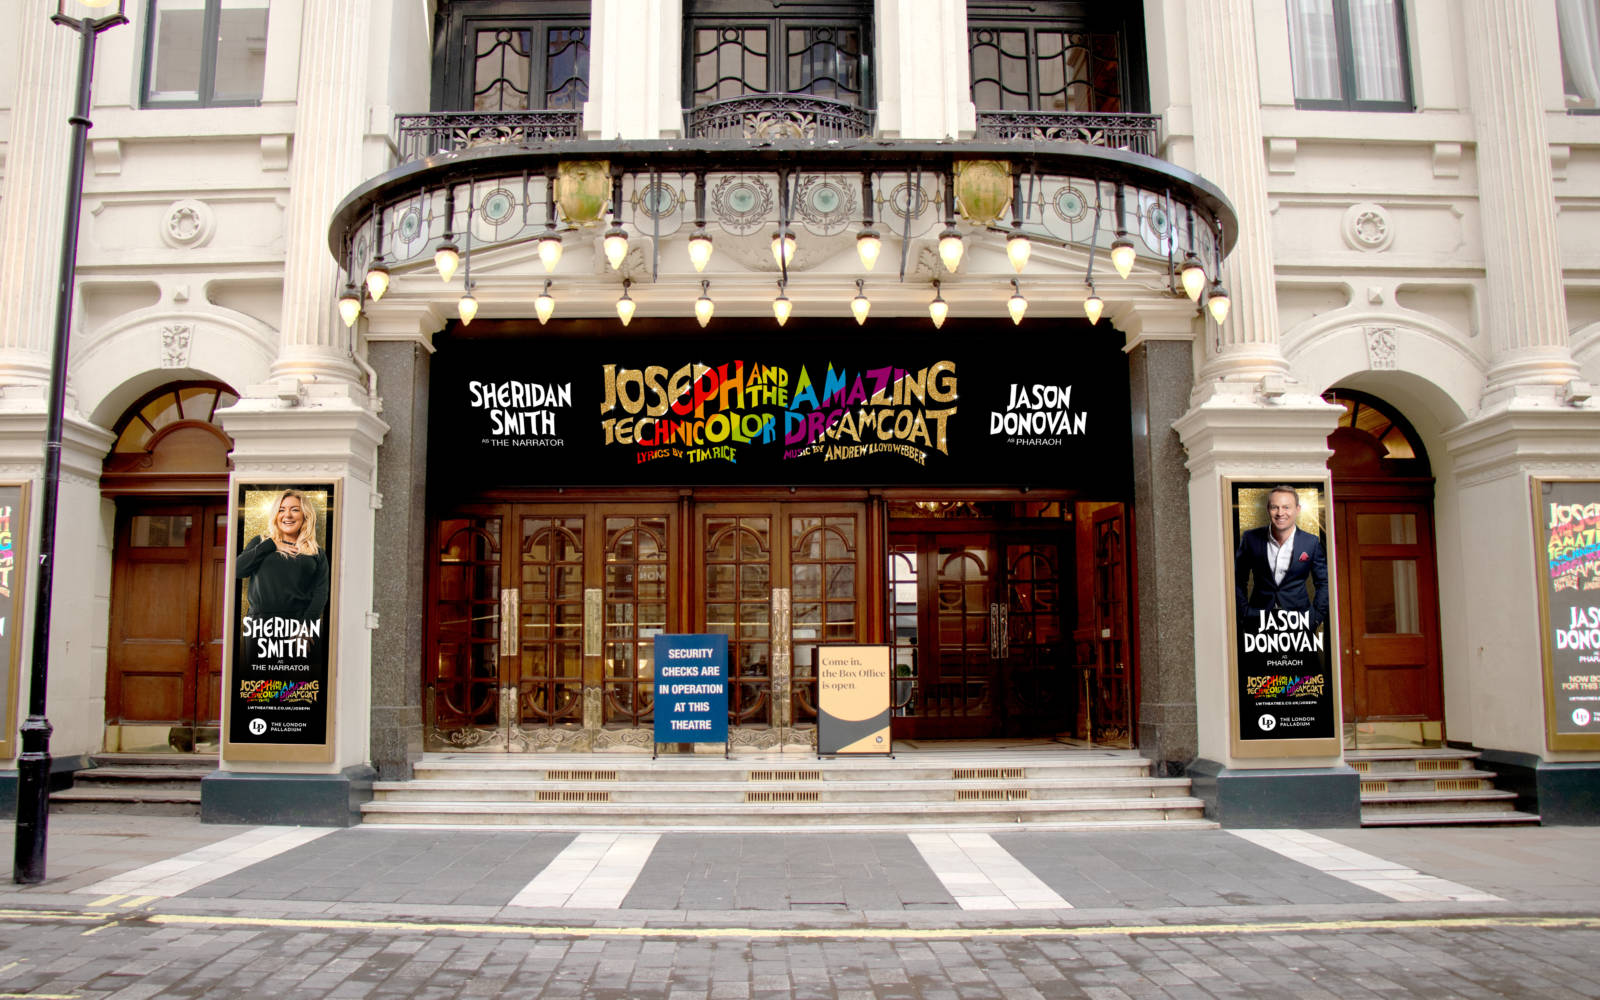 Full casting announced for Joseph and the Amazing